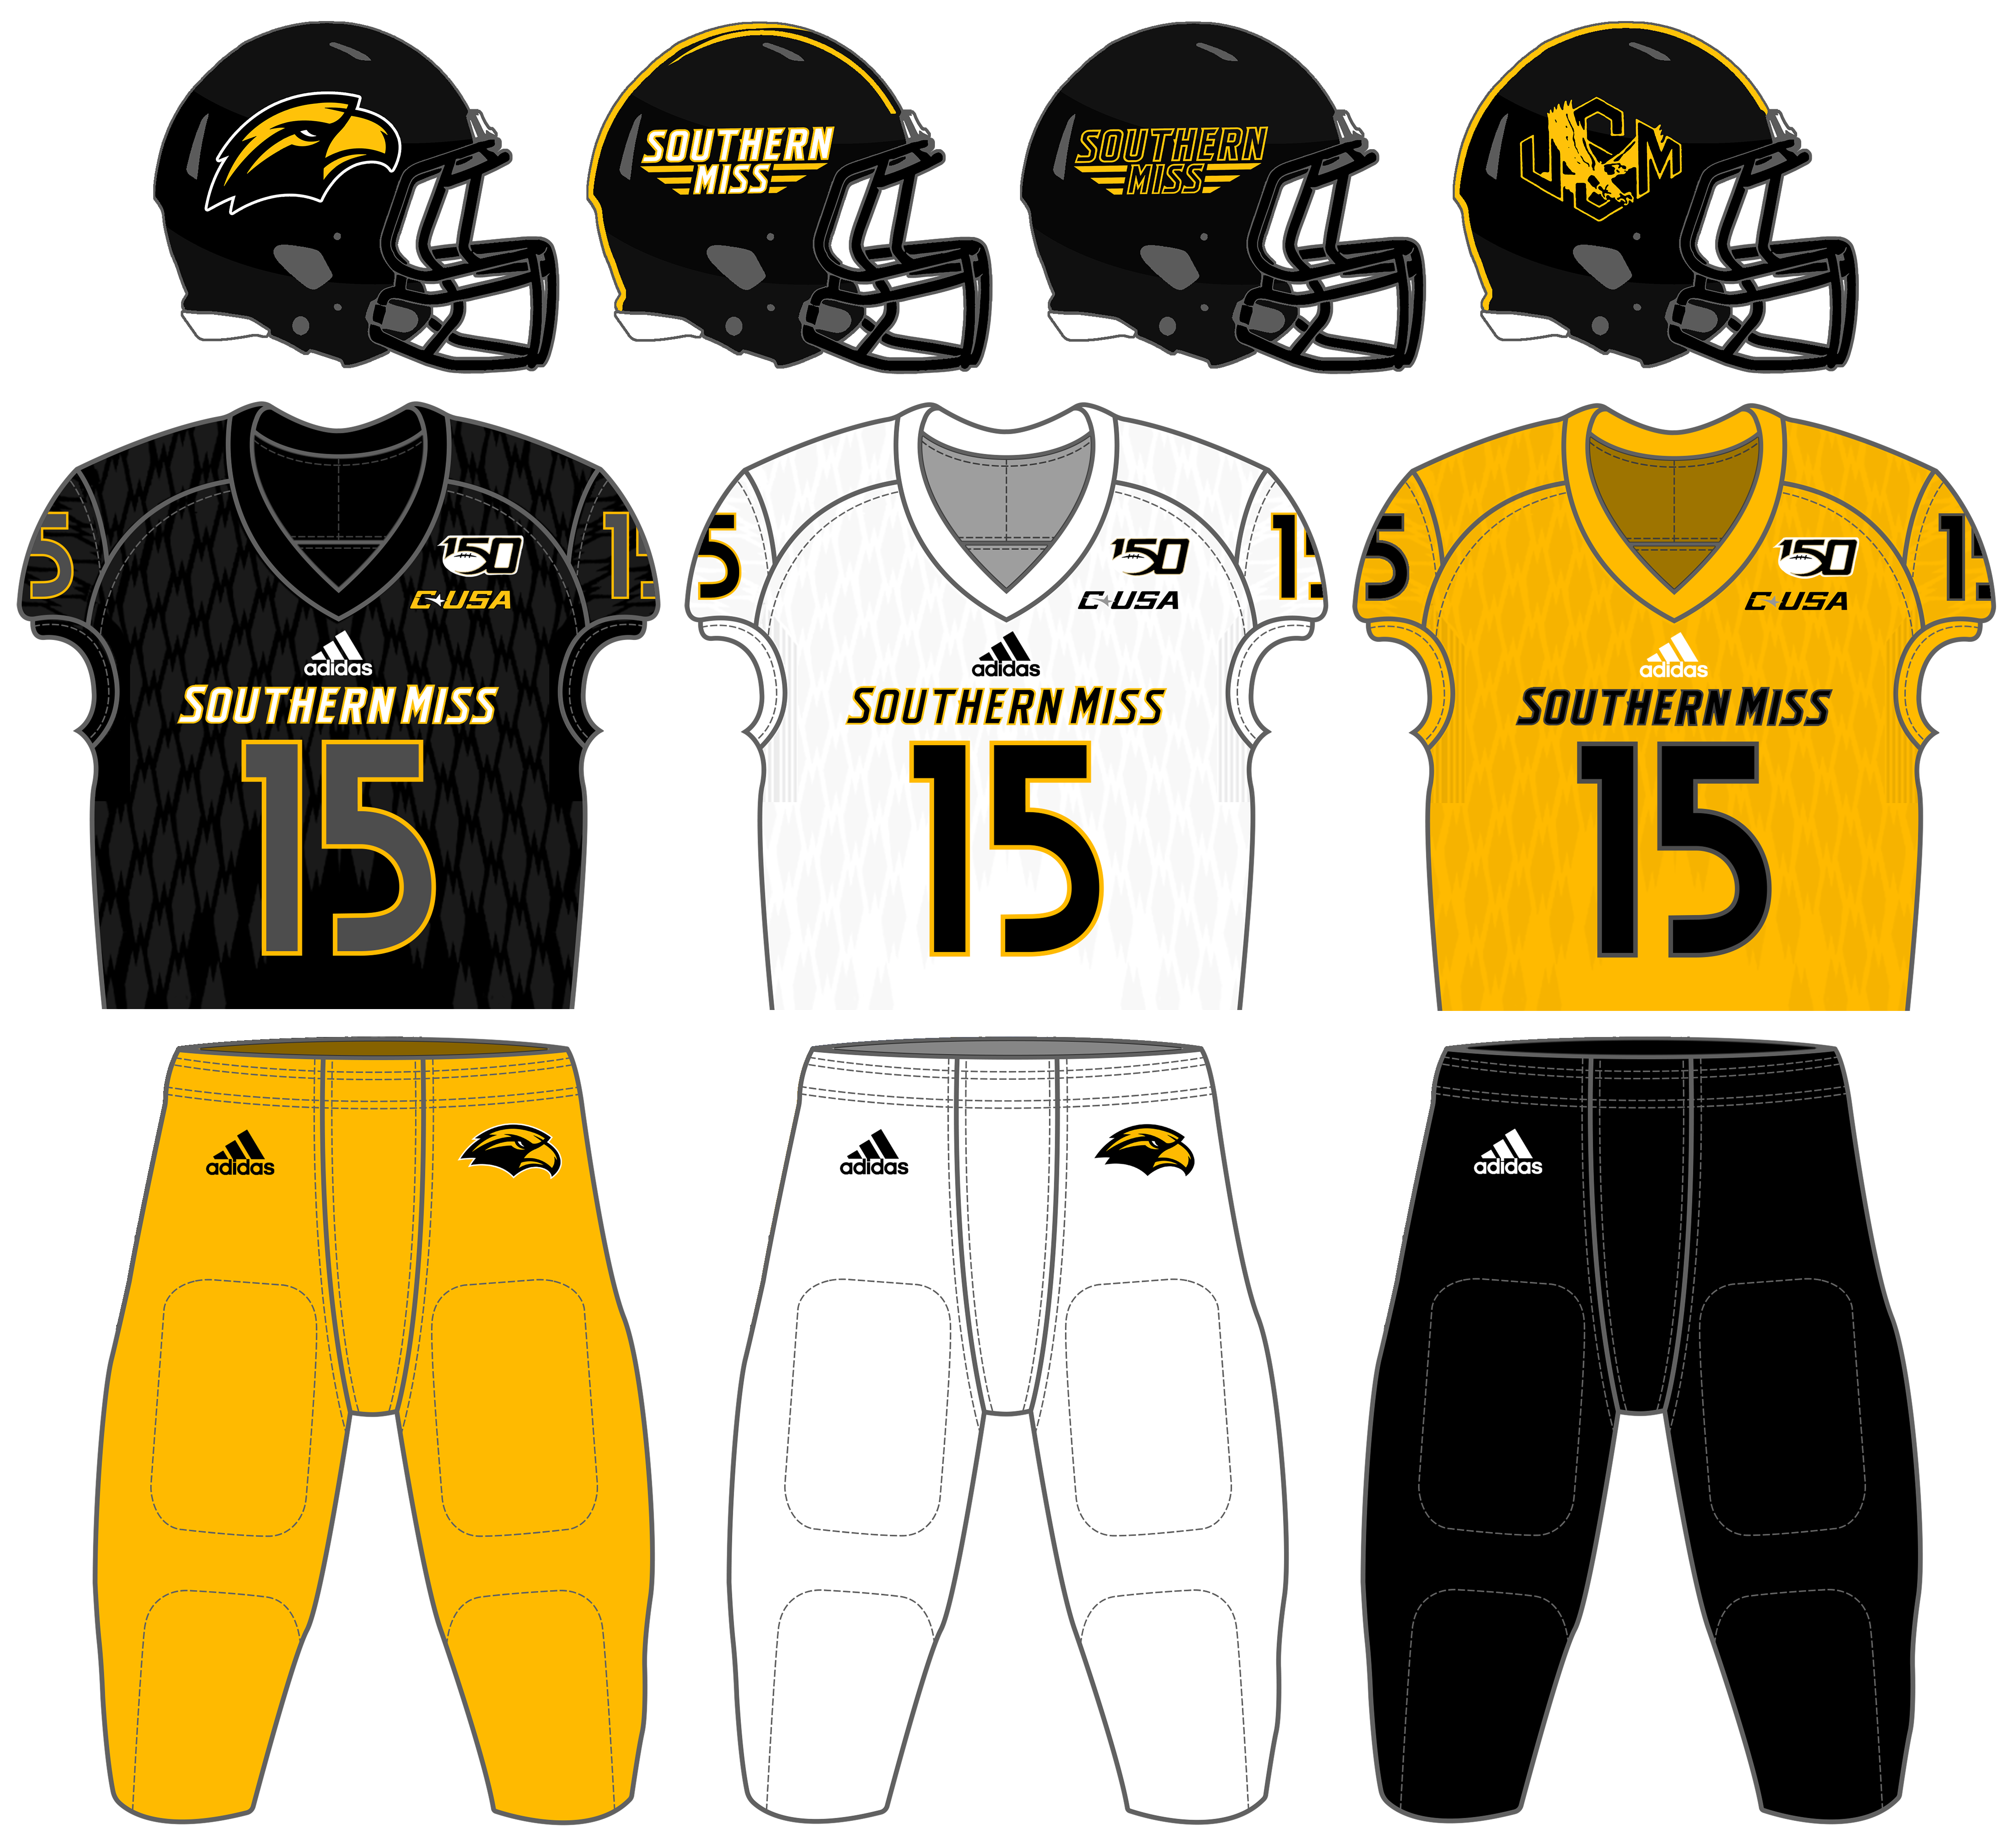 quality design 00c07 776e1 Southern Miss Golden Eagles football - Wikipedia